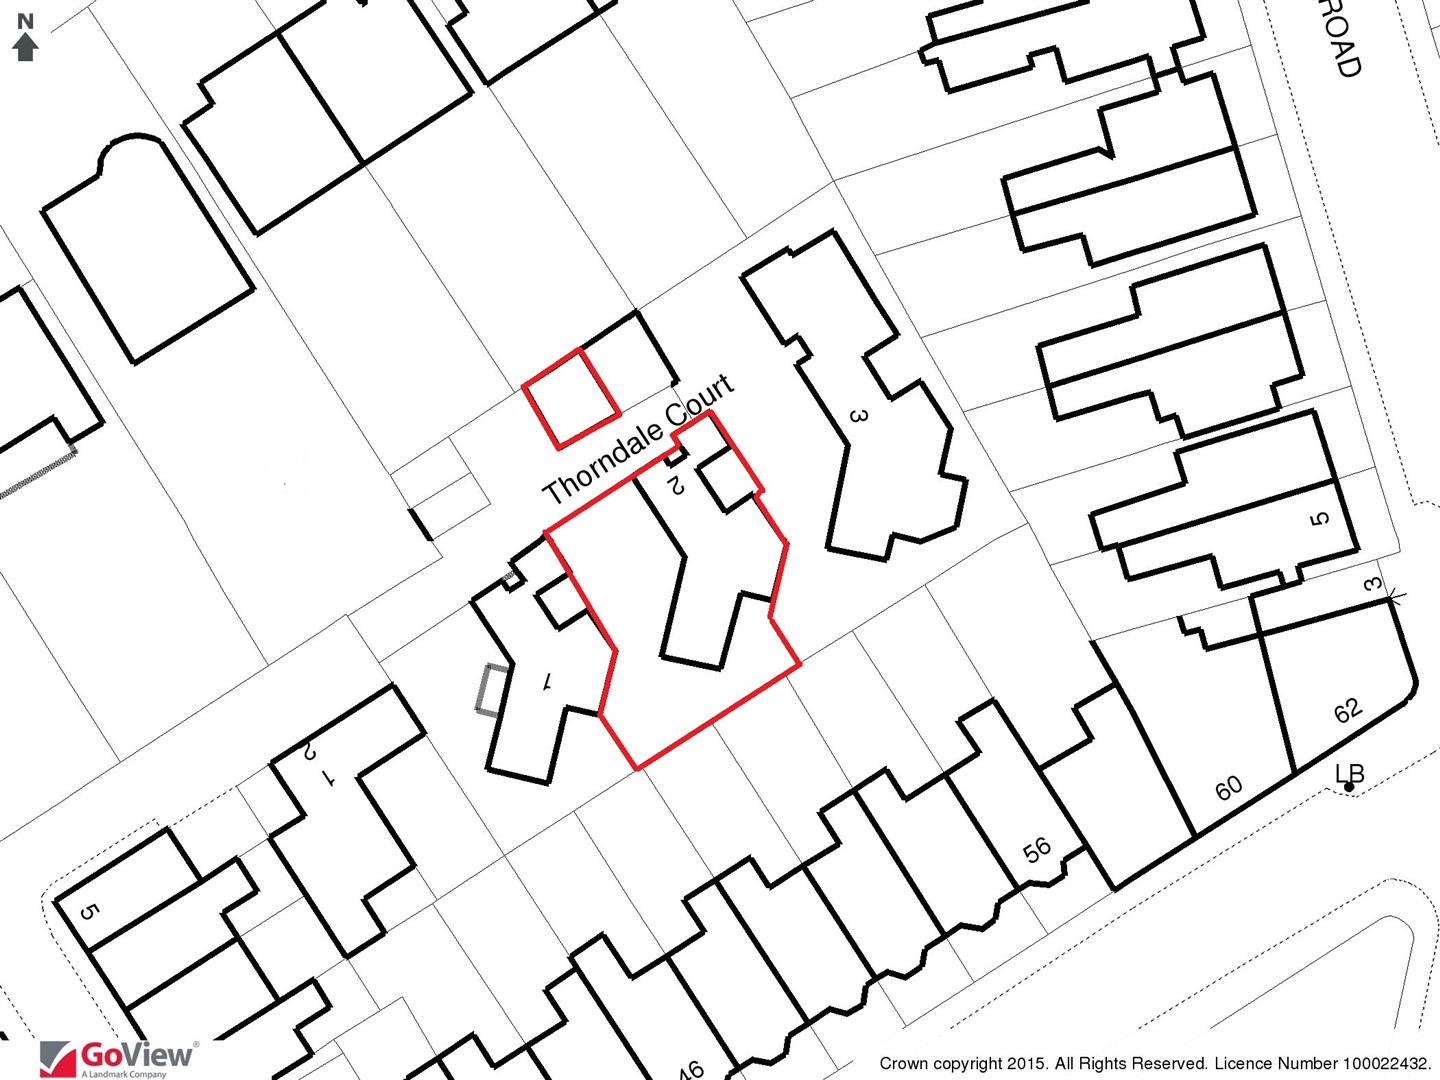 Images for Thorndale Mews, Bristol EAID:hollismoapi BID:11